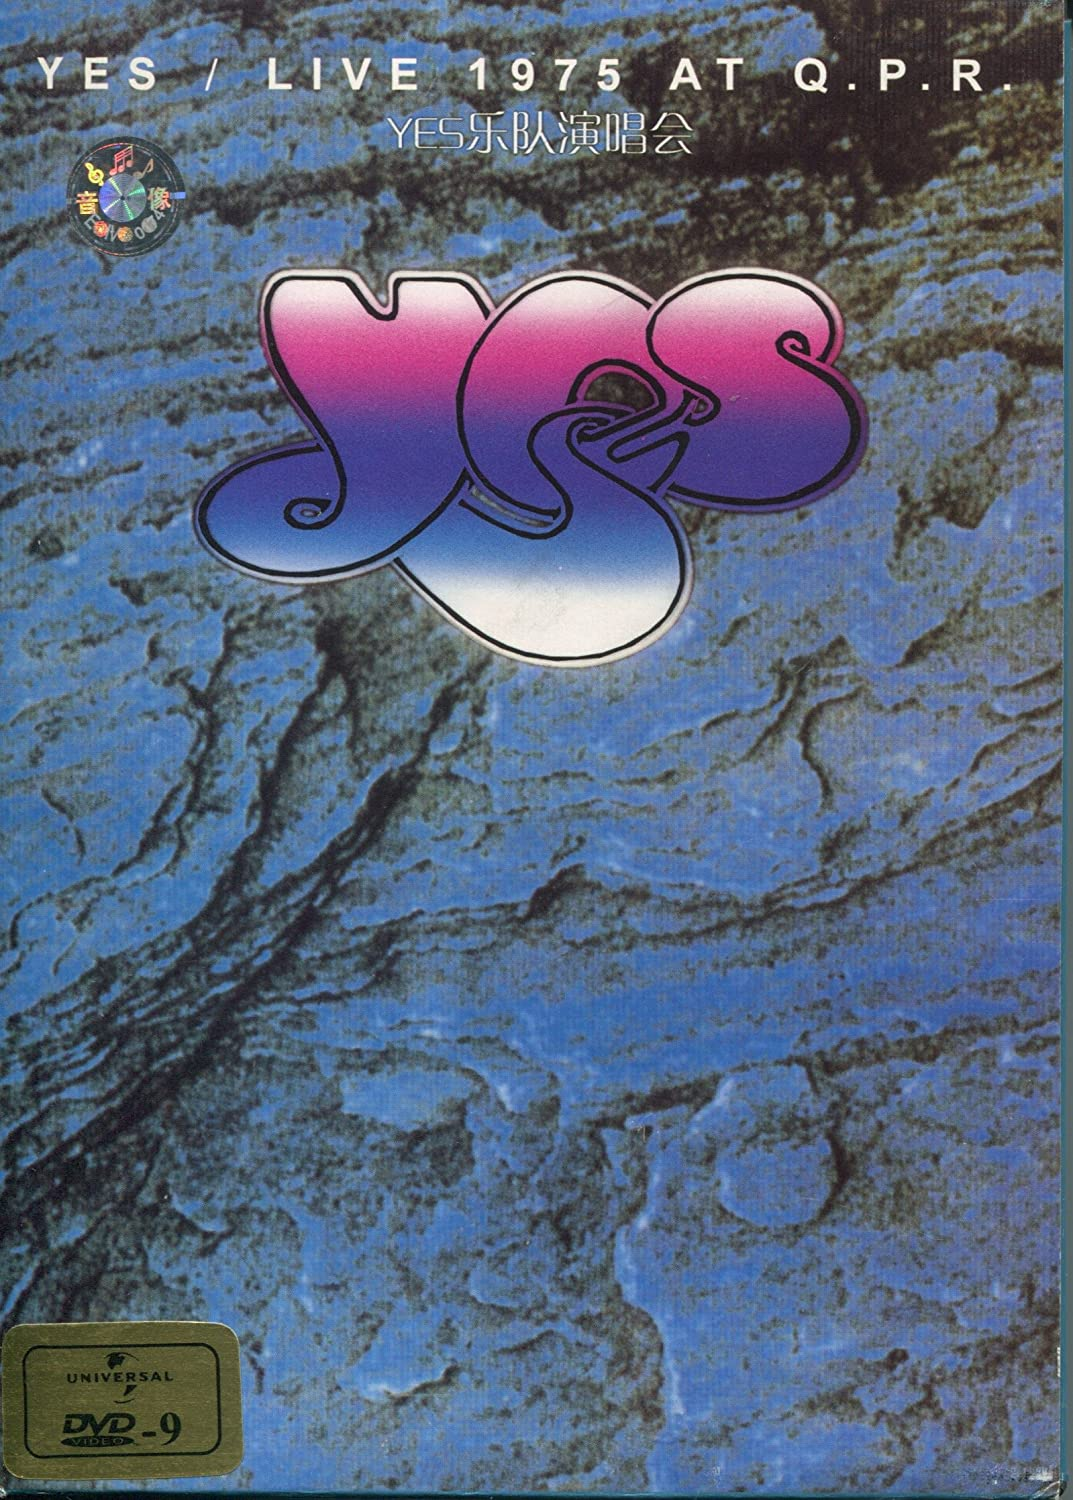 Yes: Live 1975 at QPR, Vol  1 by Yes